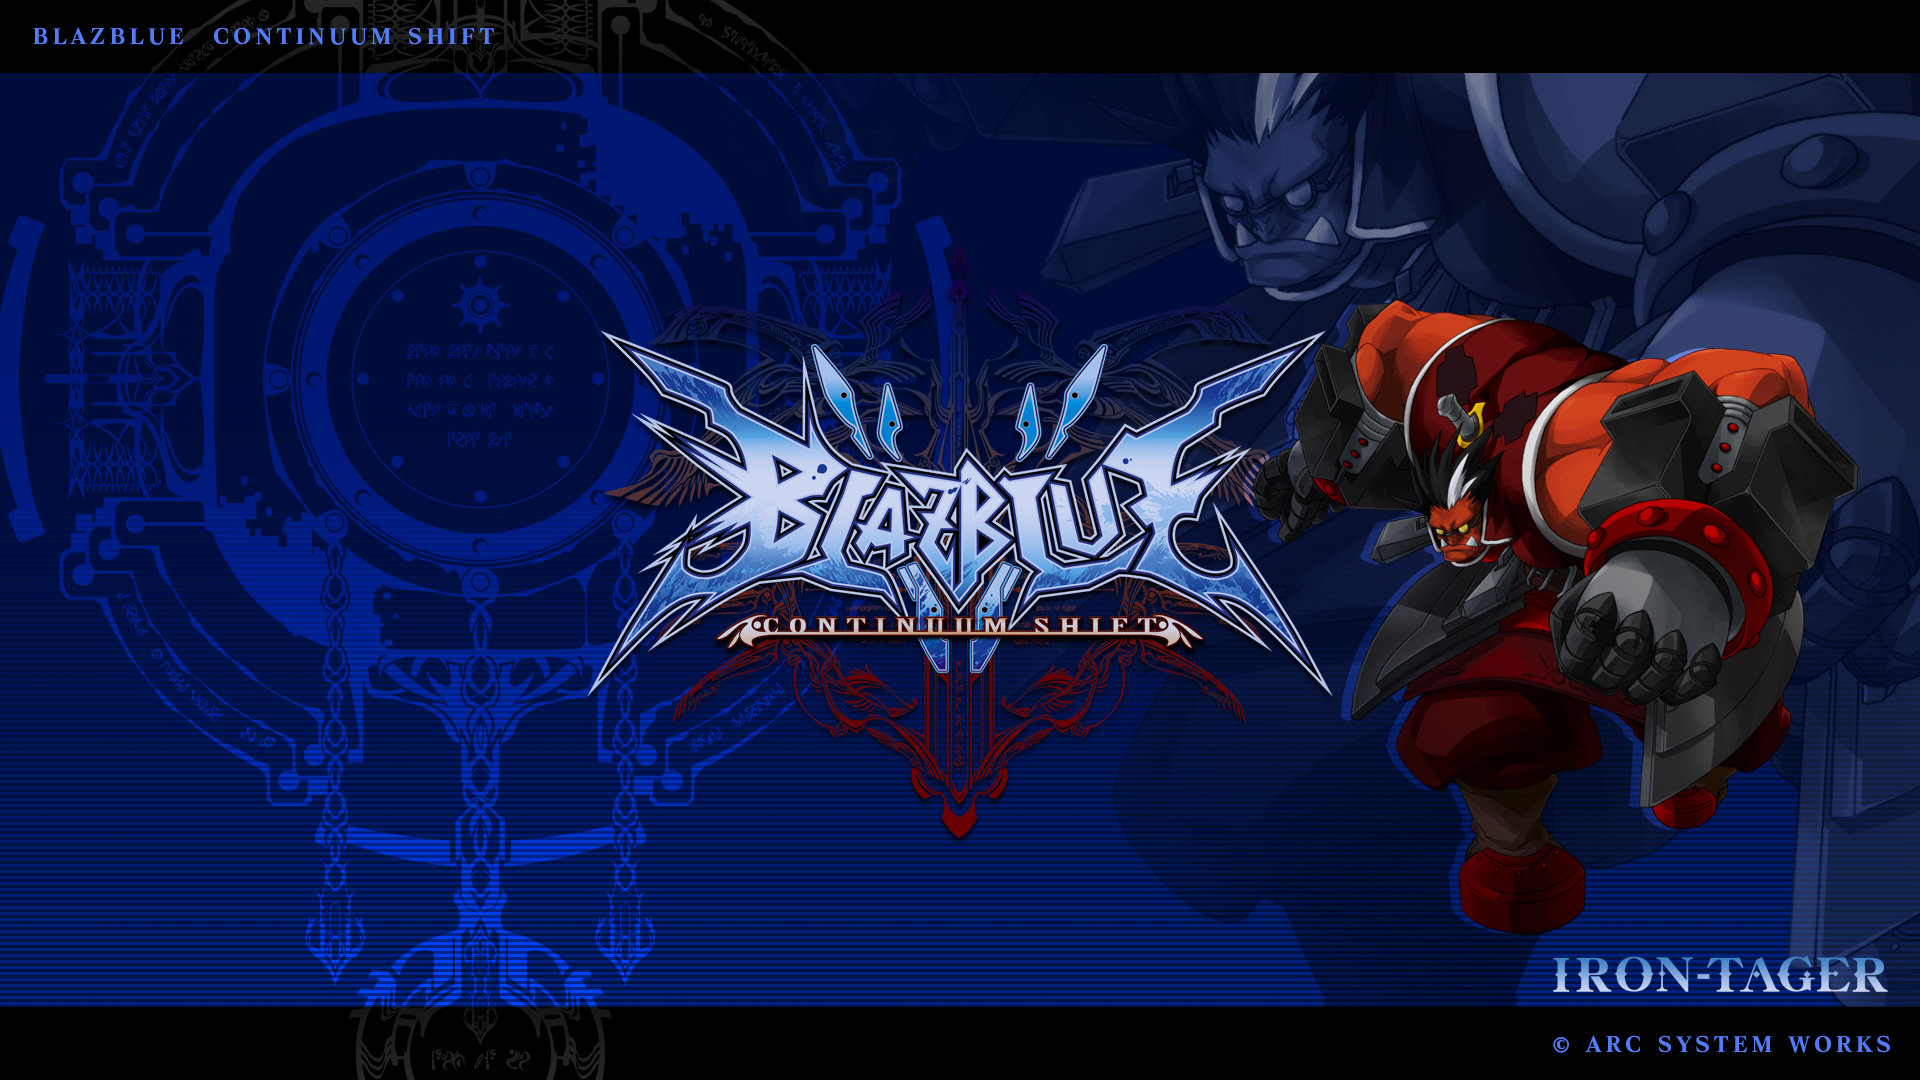 Download hd 1920x1080 Blazblue desktop wallpaper ID:75206 for free